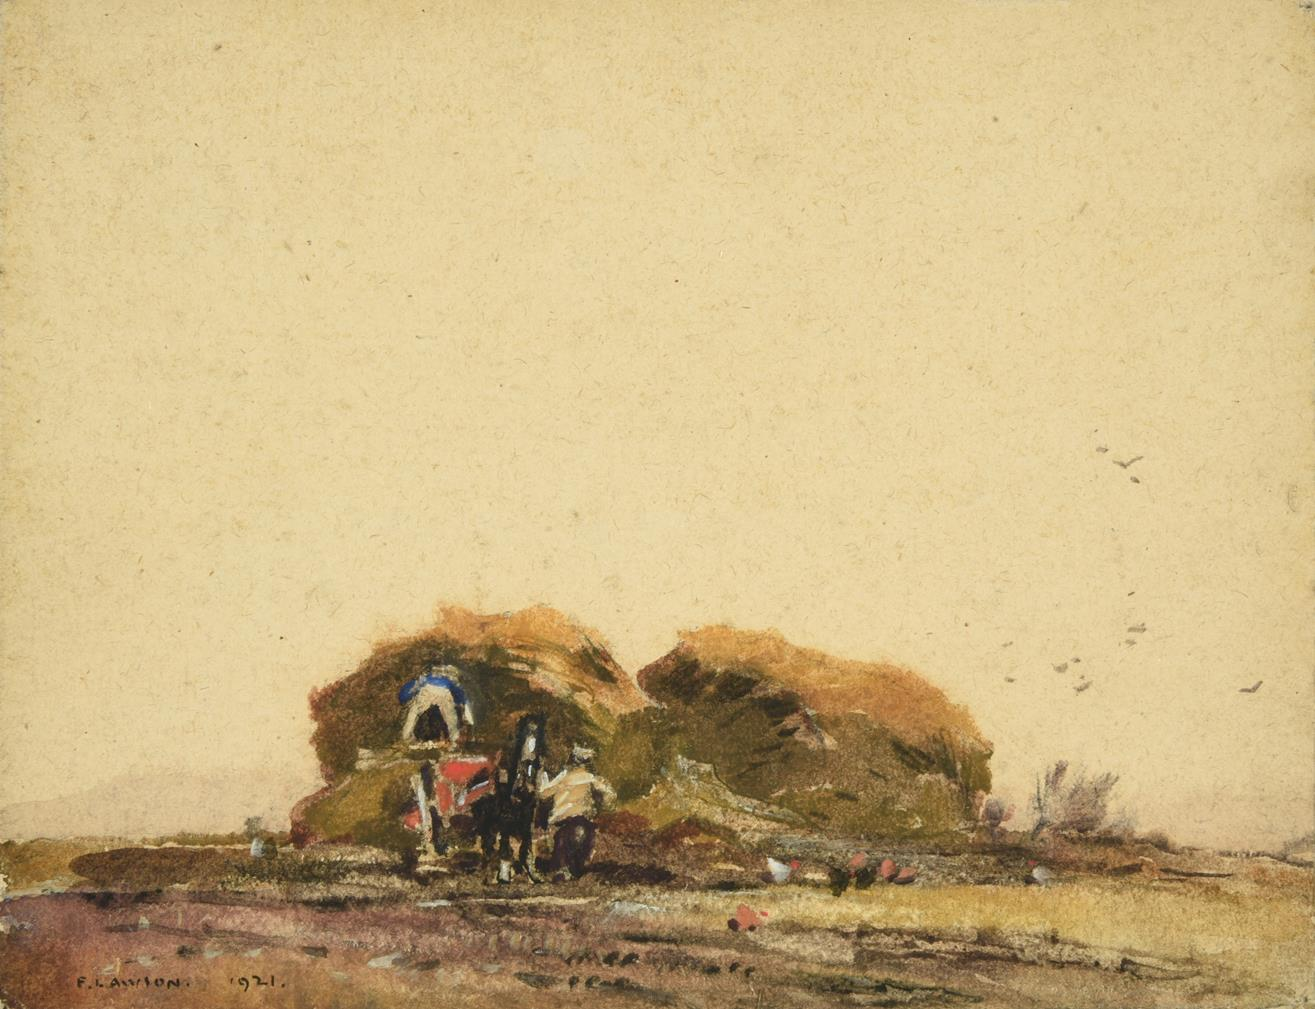 Frederick (Fred) Lawson (1888-1968) Building a hayrick Signed and dated 1921, mixed media, 22cm by